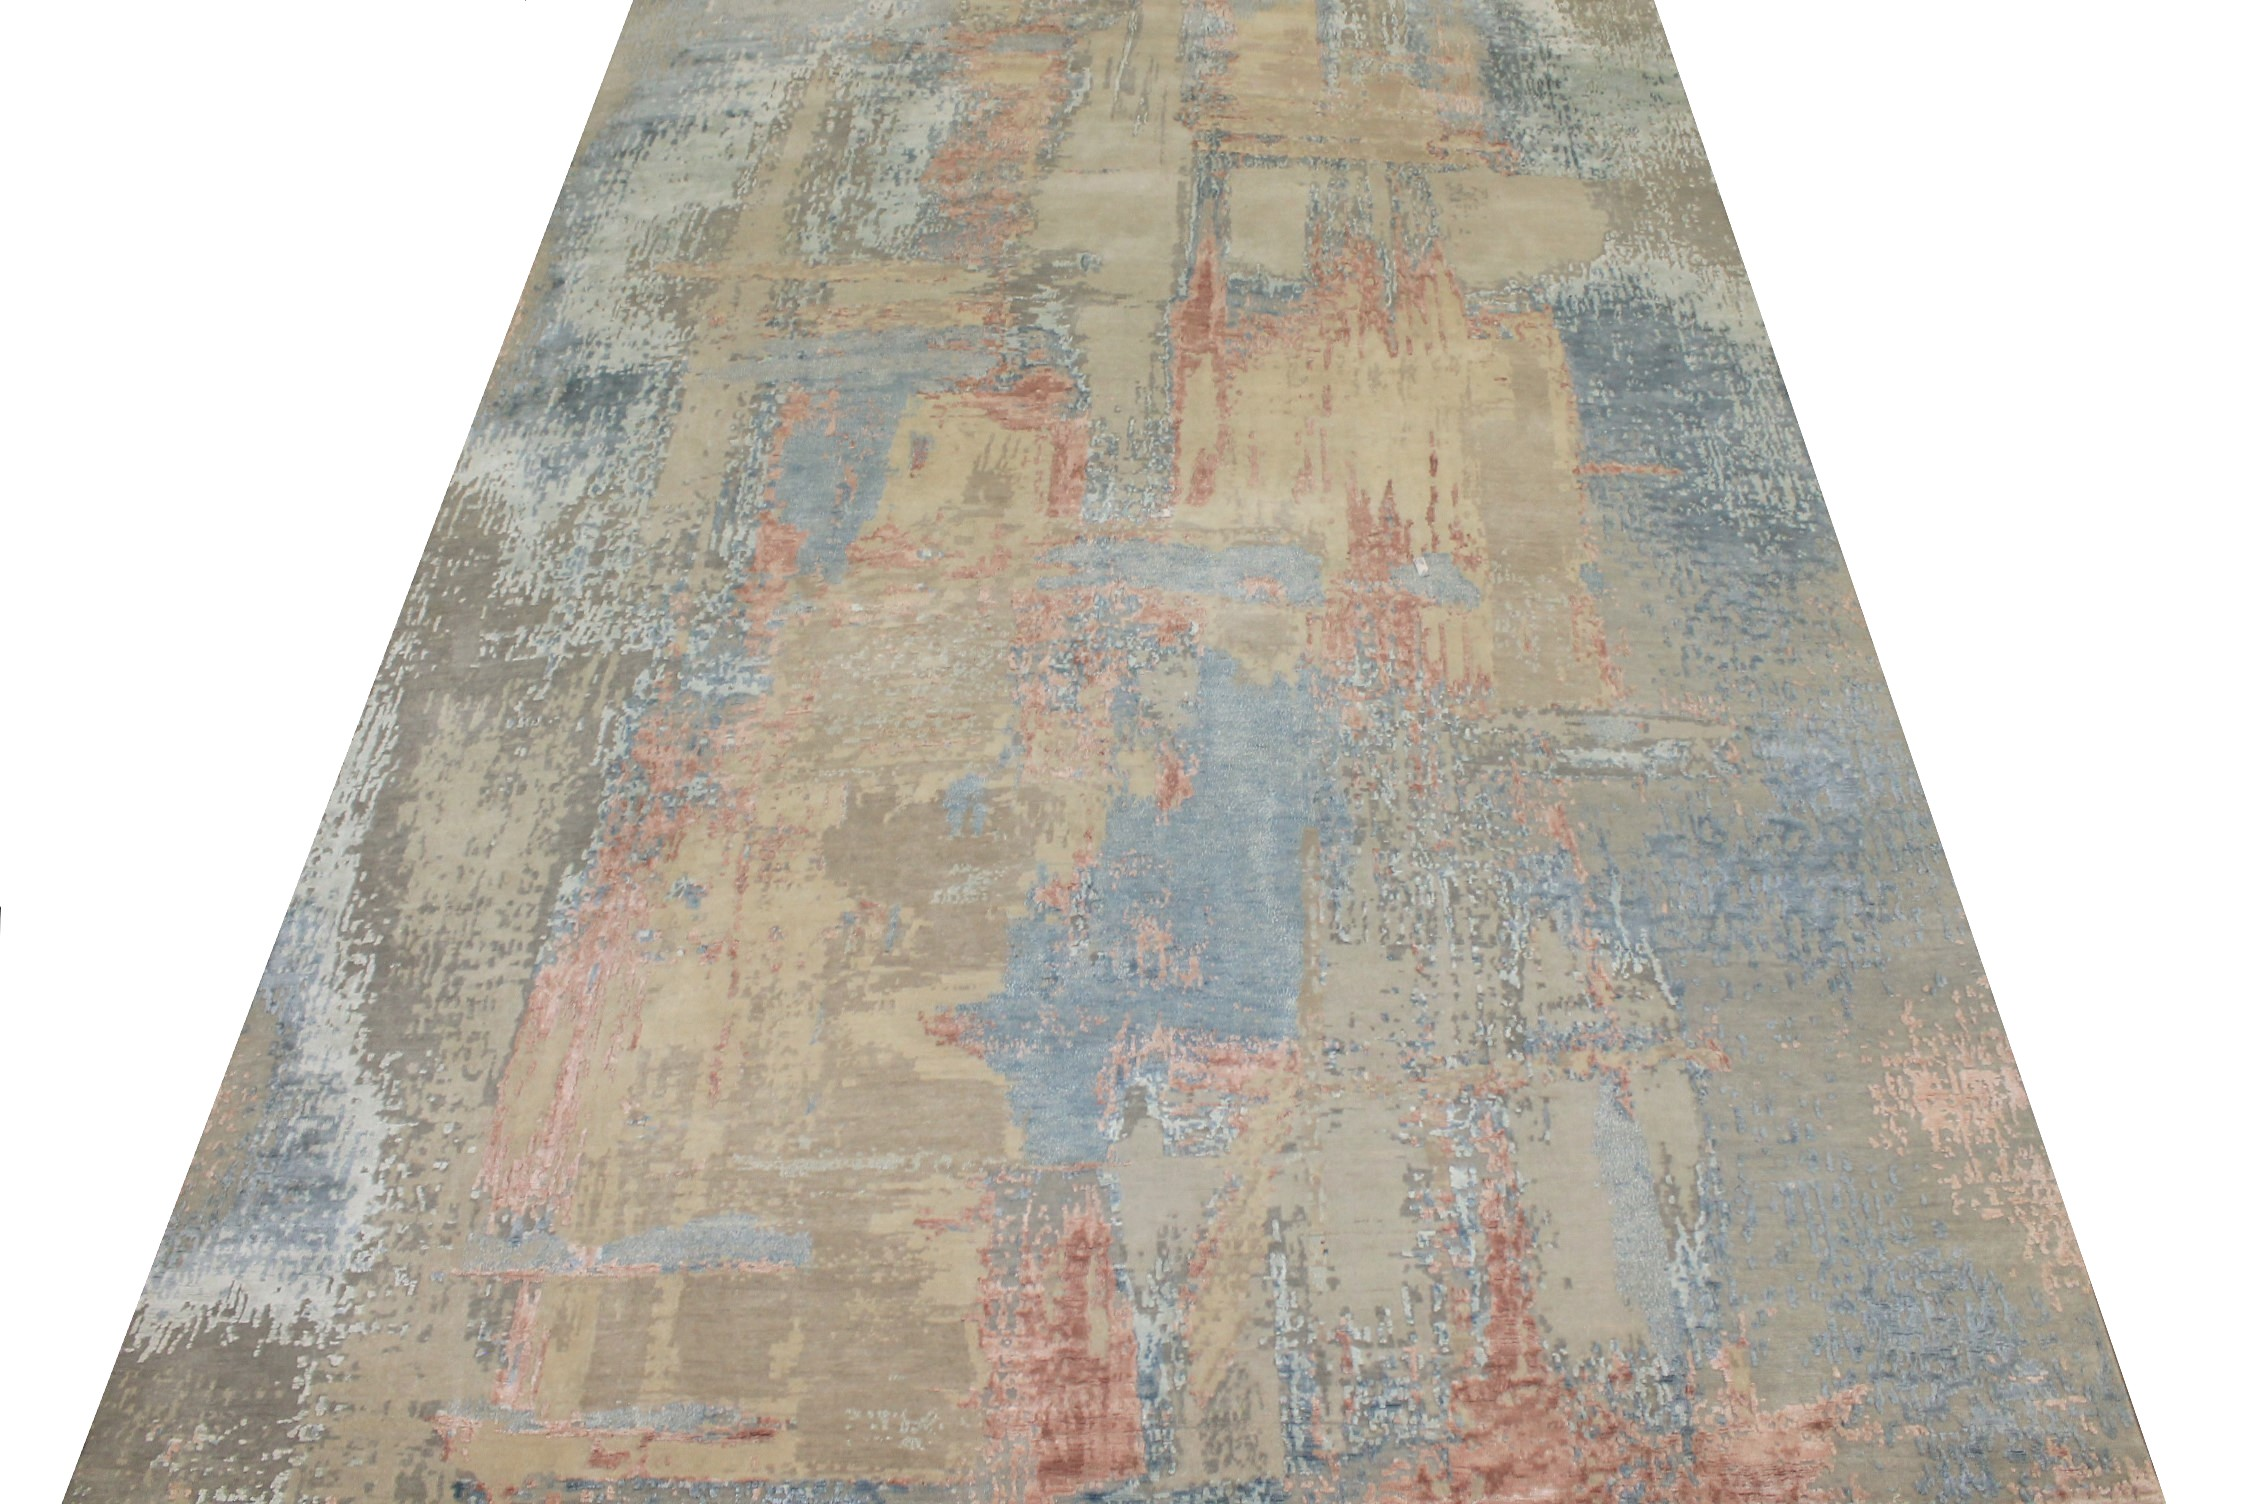 9x12 Modern Hand Knotted Wool & Bamboo Silk Area Rug - MR024663